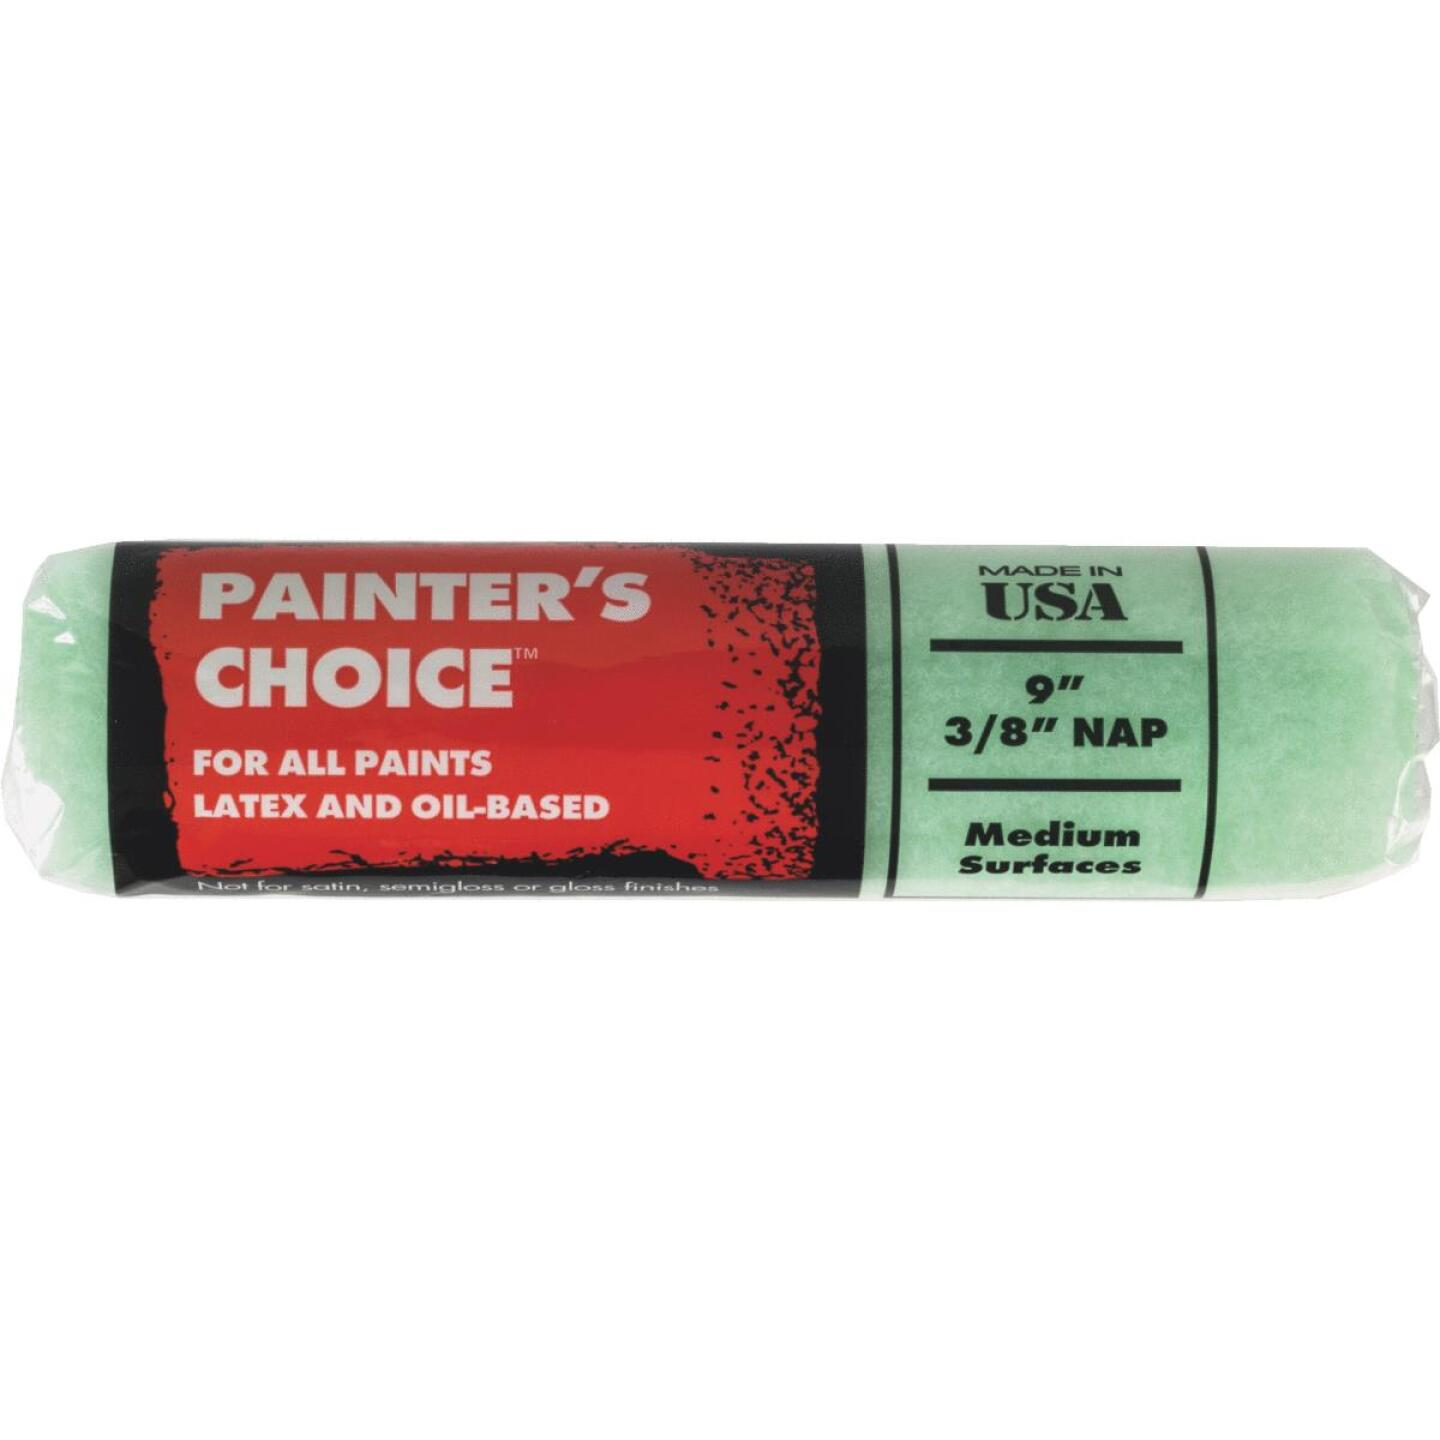 Wooster Painter's Choice 9 In. x 3/8 In. Knit Fabric Roller Cover Image 1